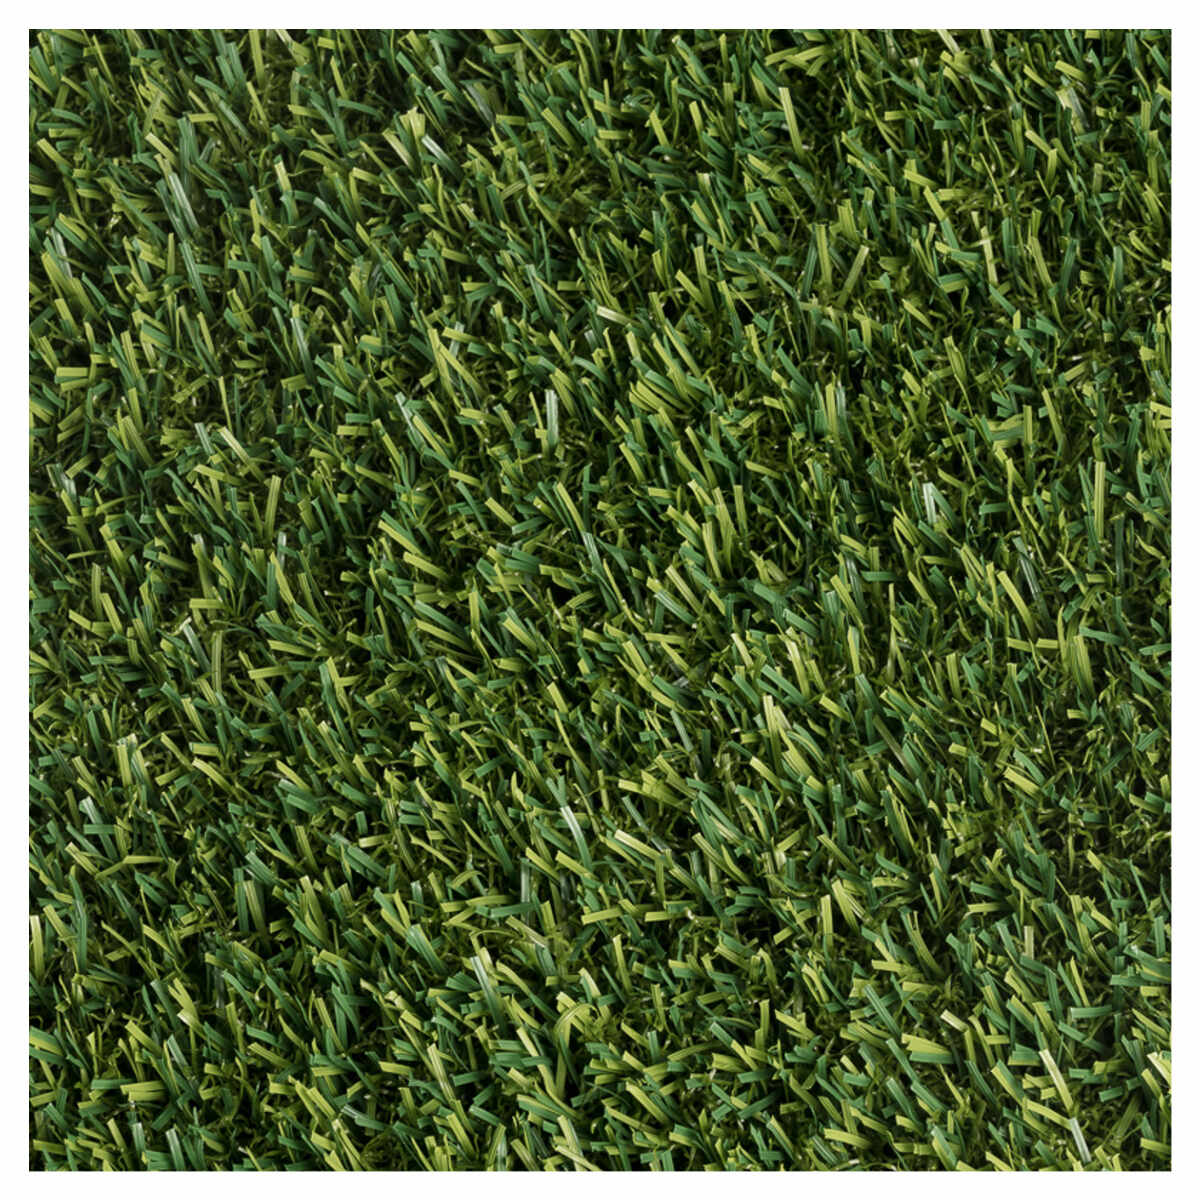 Gazon artificial Primavera 17, Cfl-S1, Verde, Latime 4 m